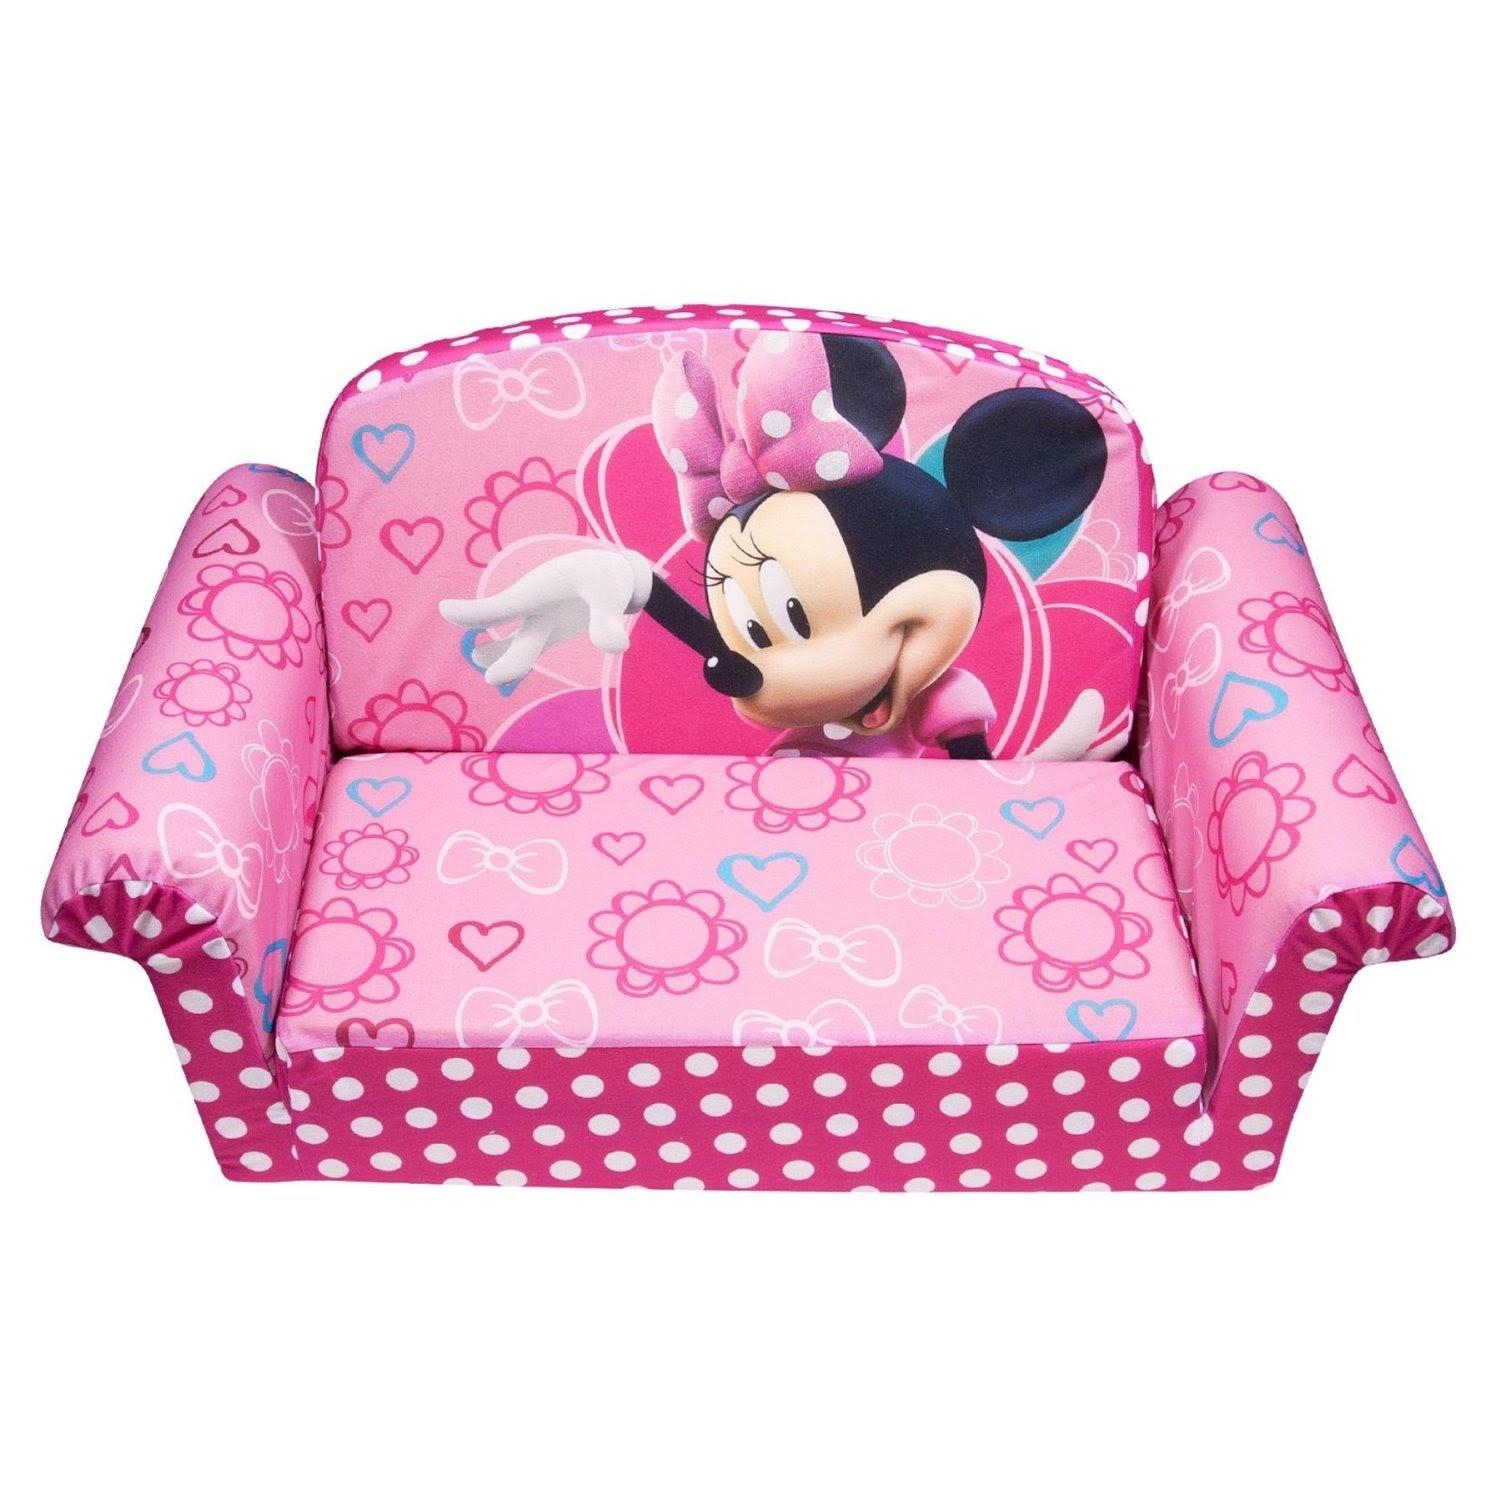 Review: Marshmallow Children's Furniture – 2 In 1 Flip Open Sofa Inside Mickey Fold Out Couches (View 11 of 20)